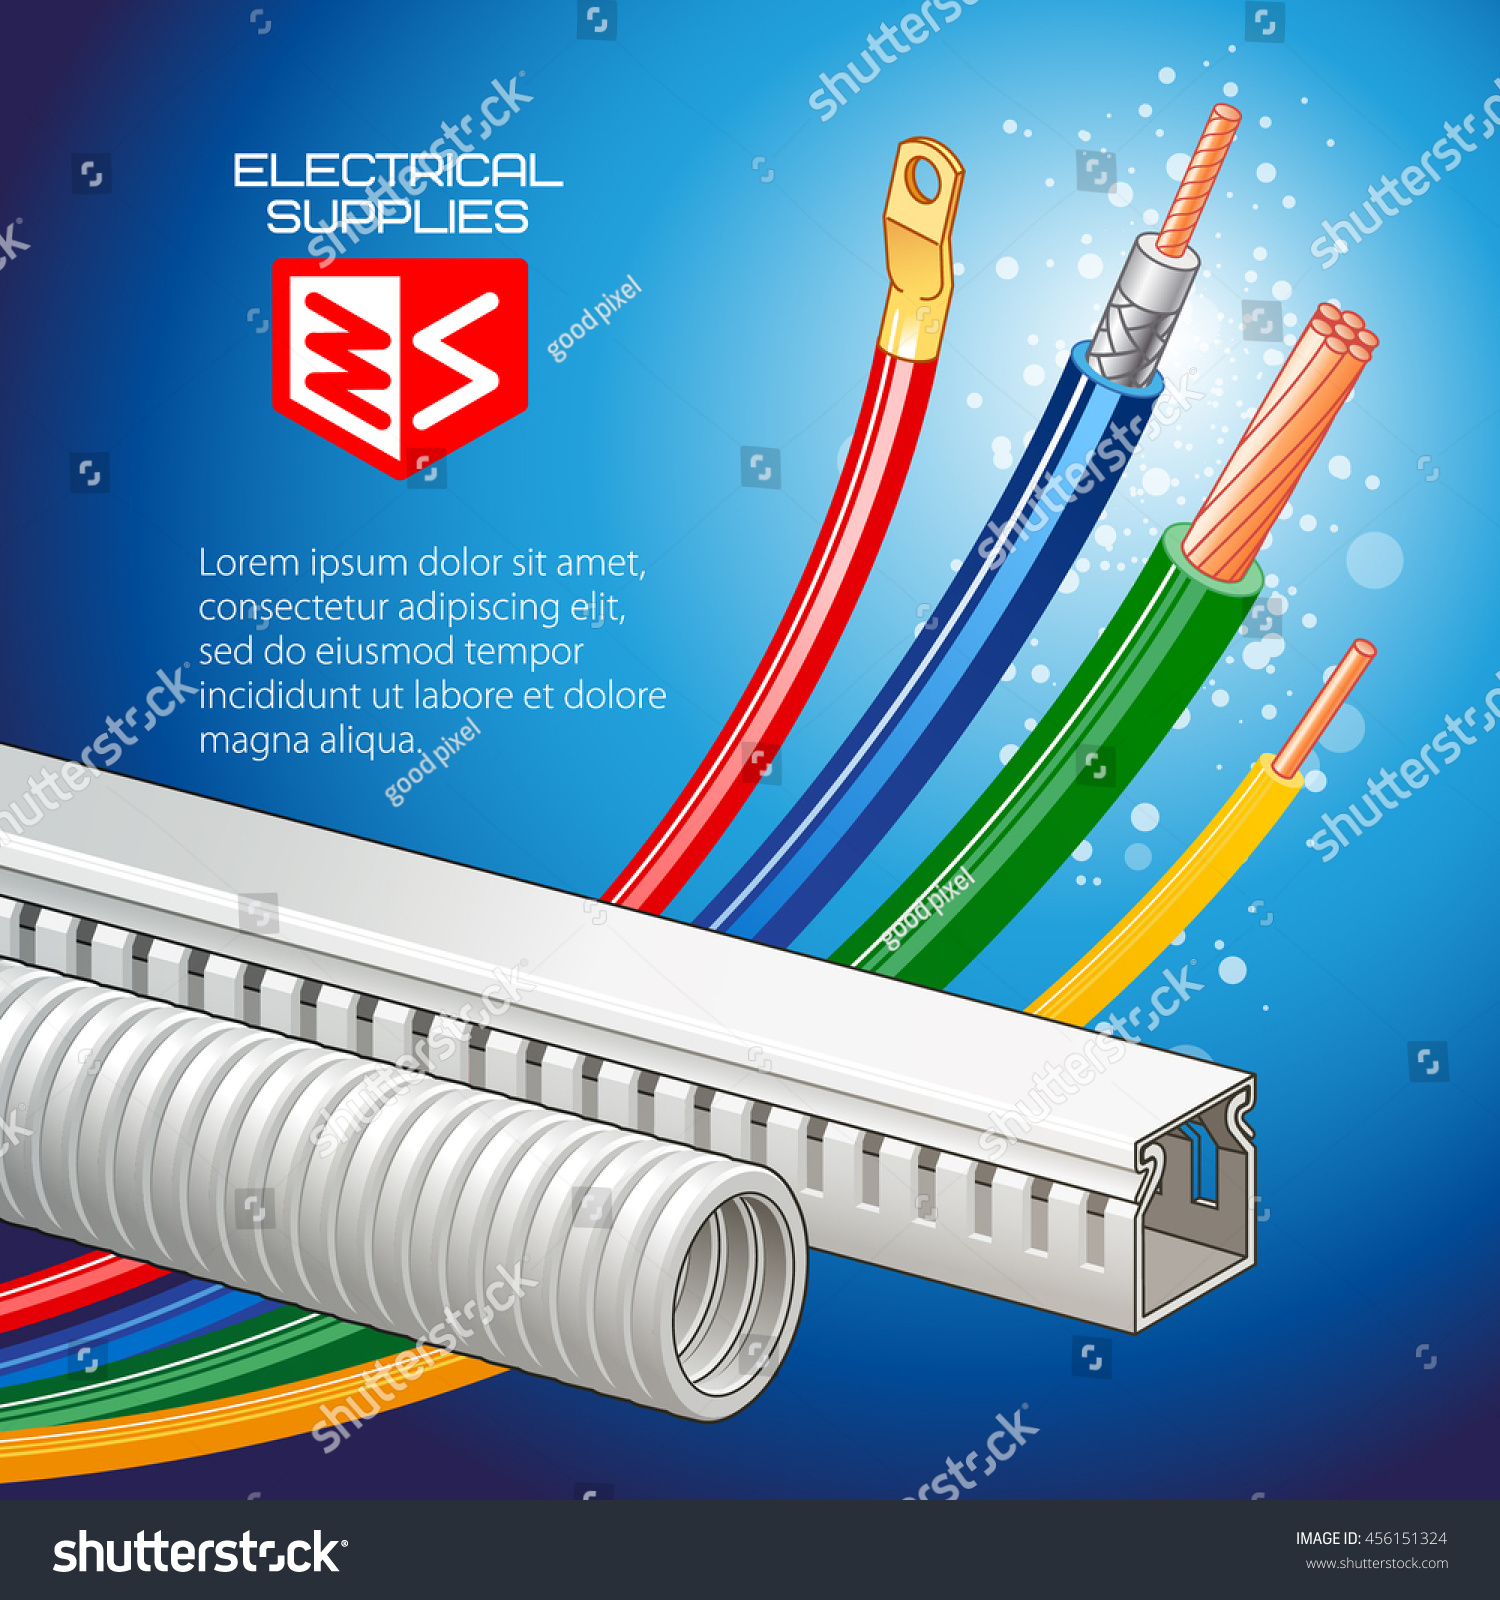 Electrical supplies, multicolored wires, cable, cable-channel. Vector  illustration.